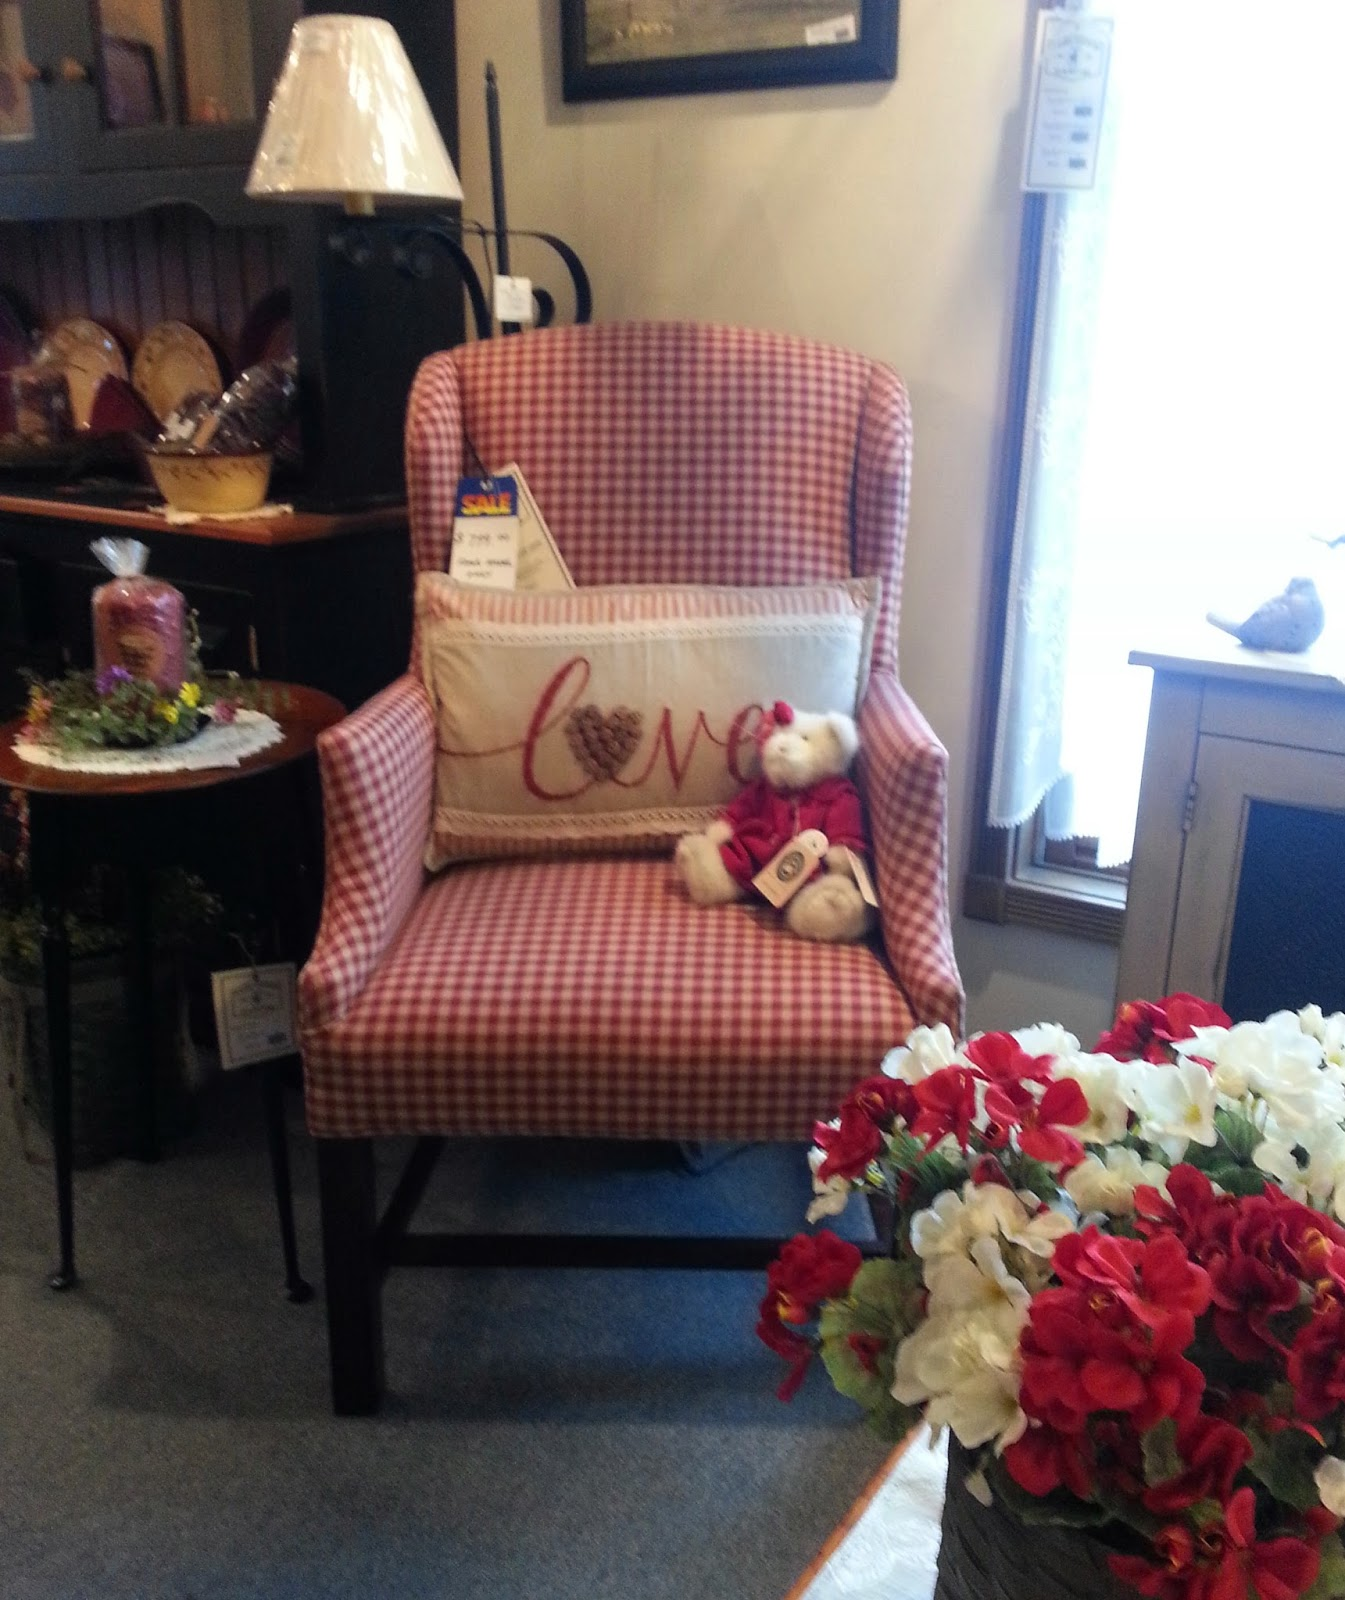 American Furniture Warehouse Online Shopping: Classic Country Furniture